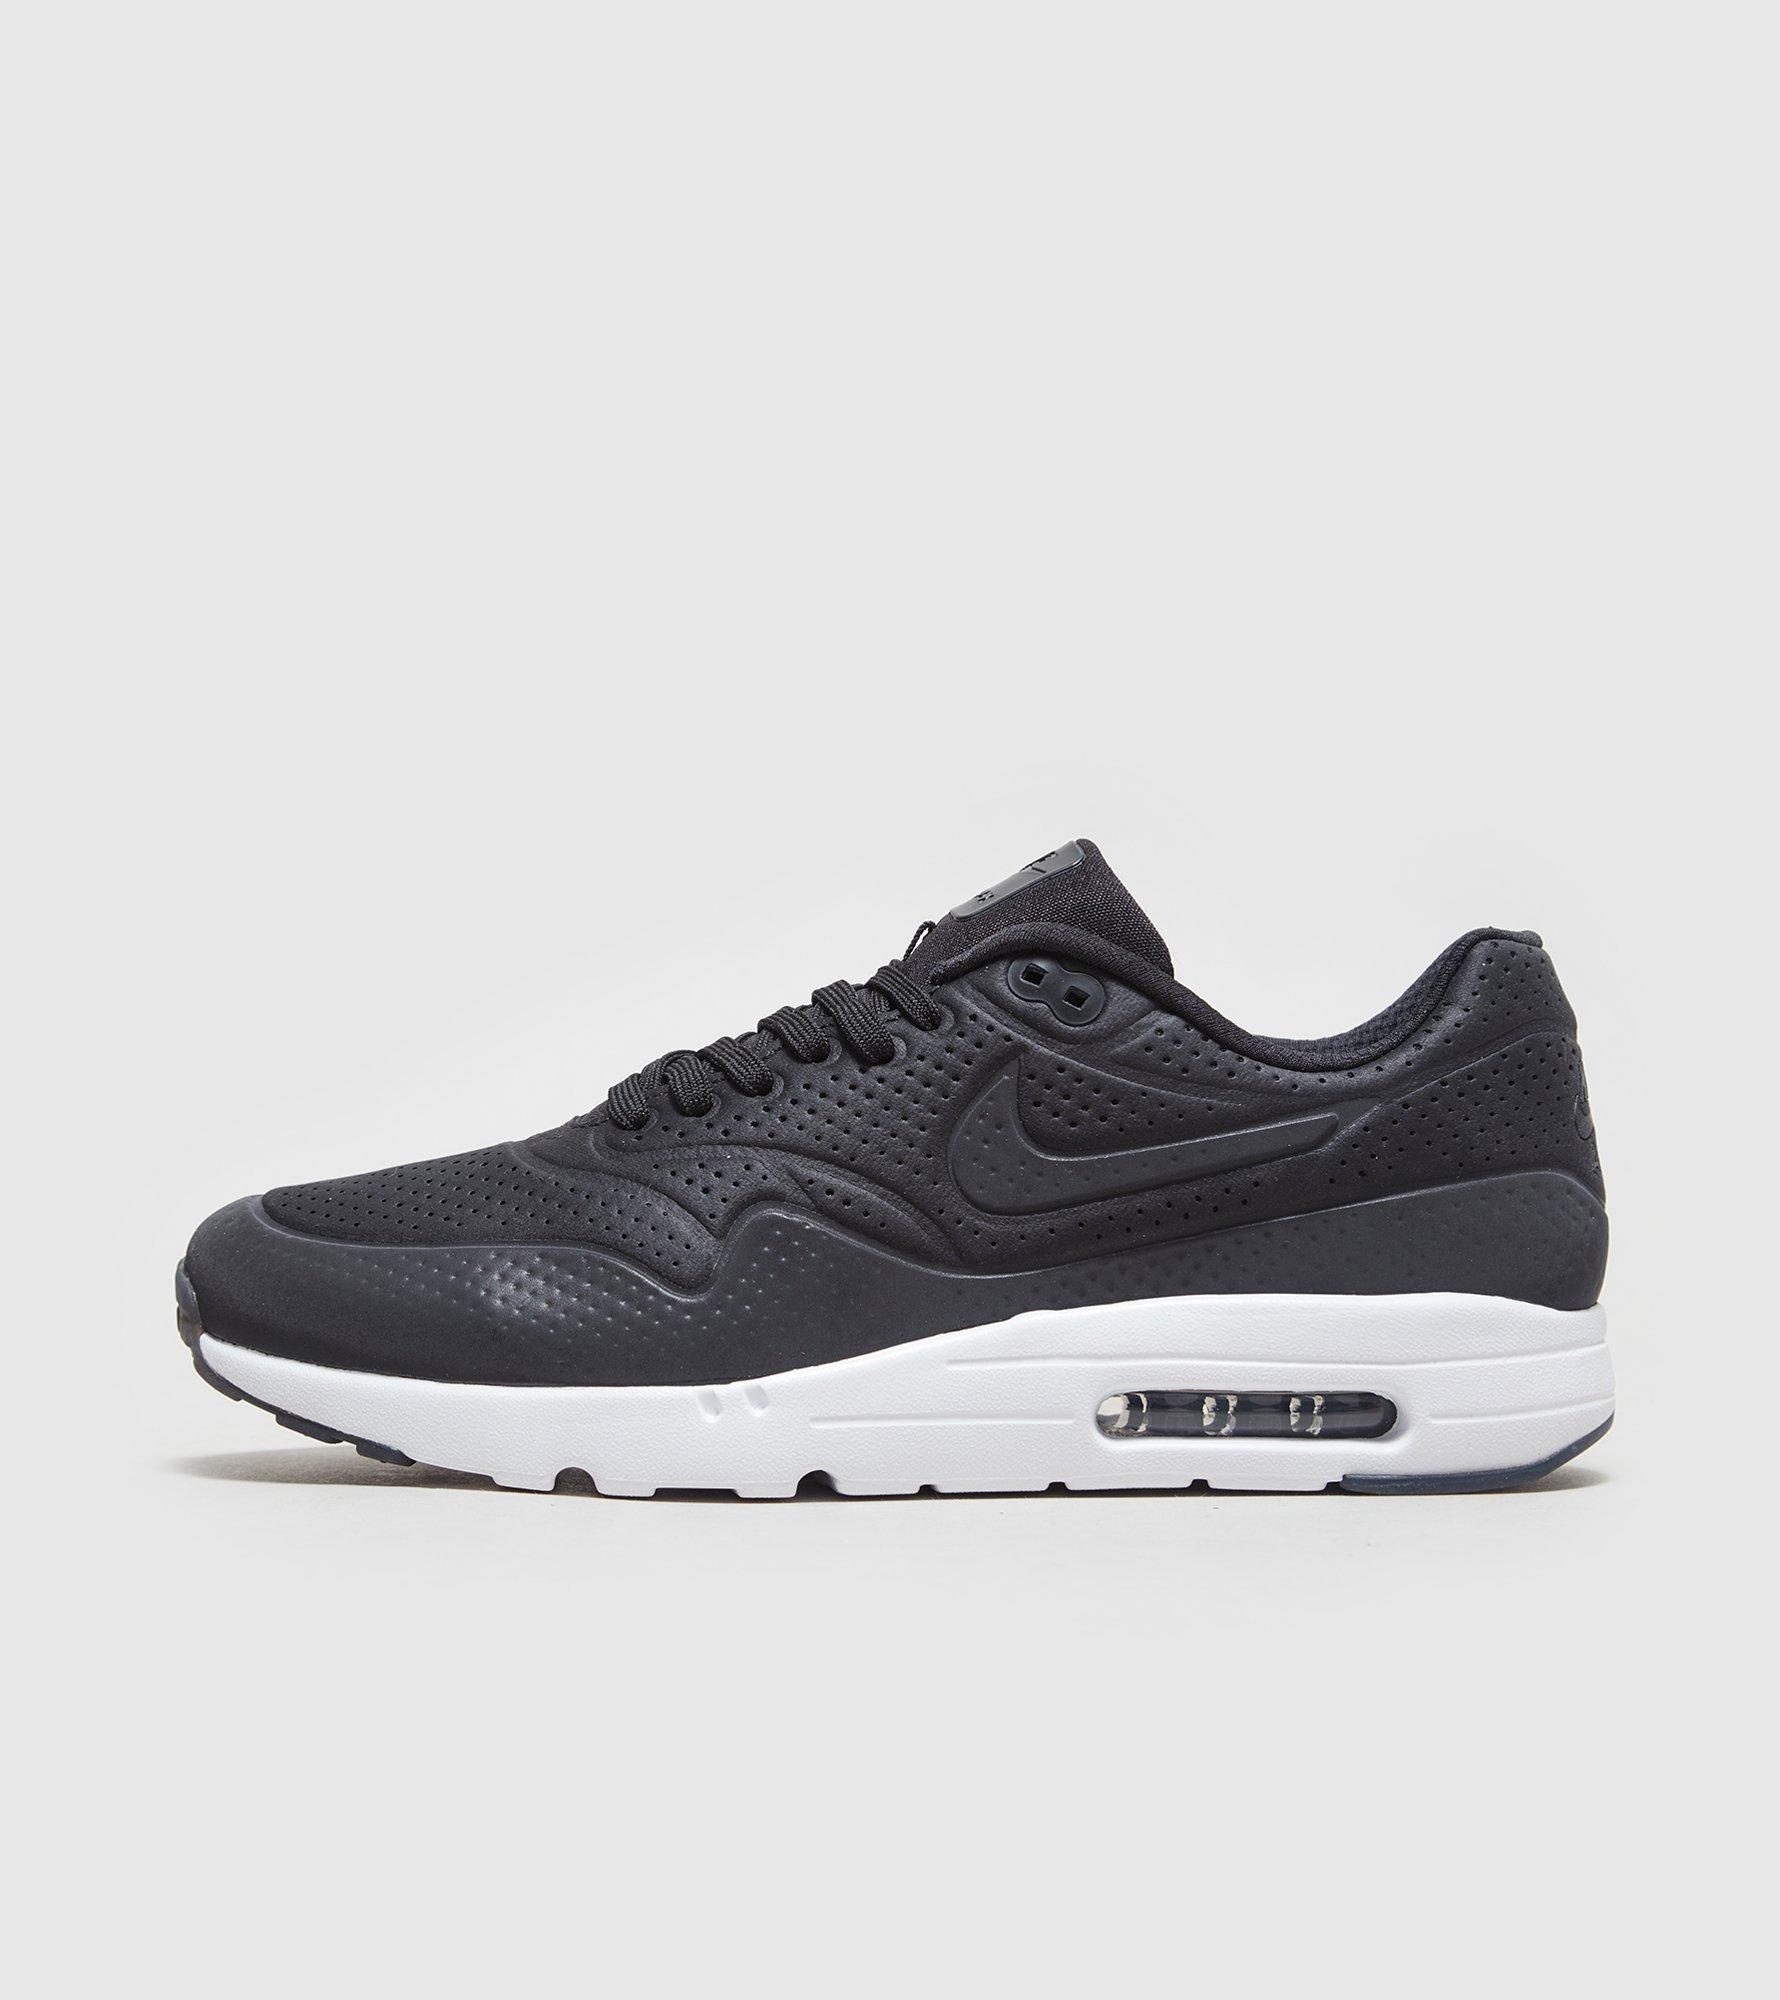 af7c19db0d8a67 Where To Buy Nike Shox Tl